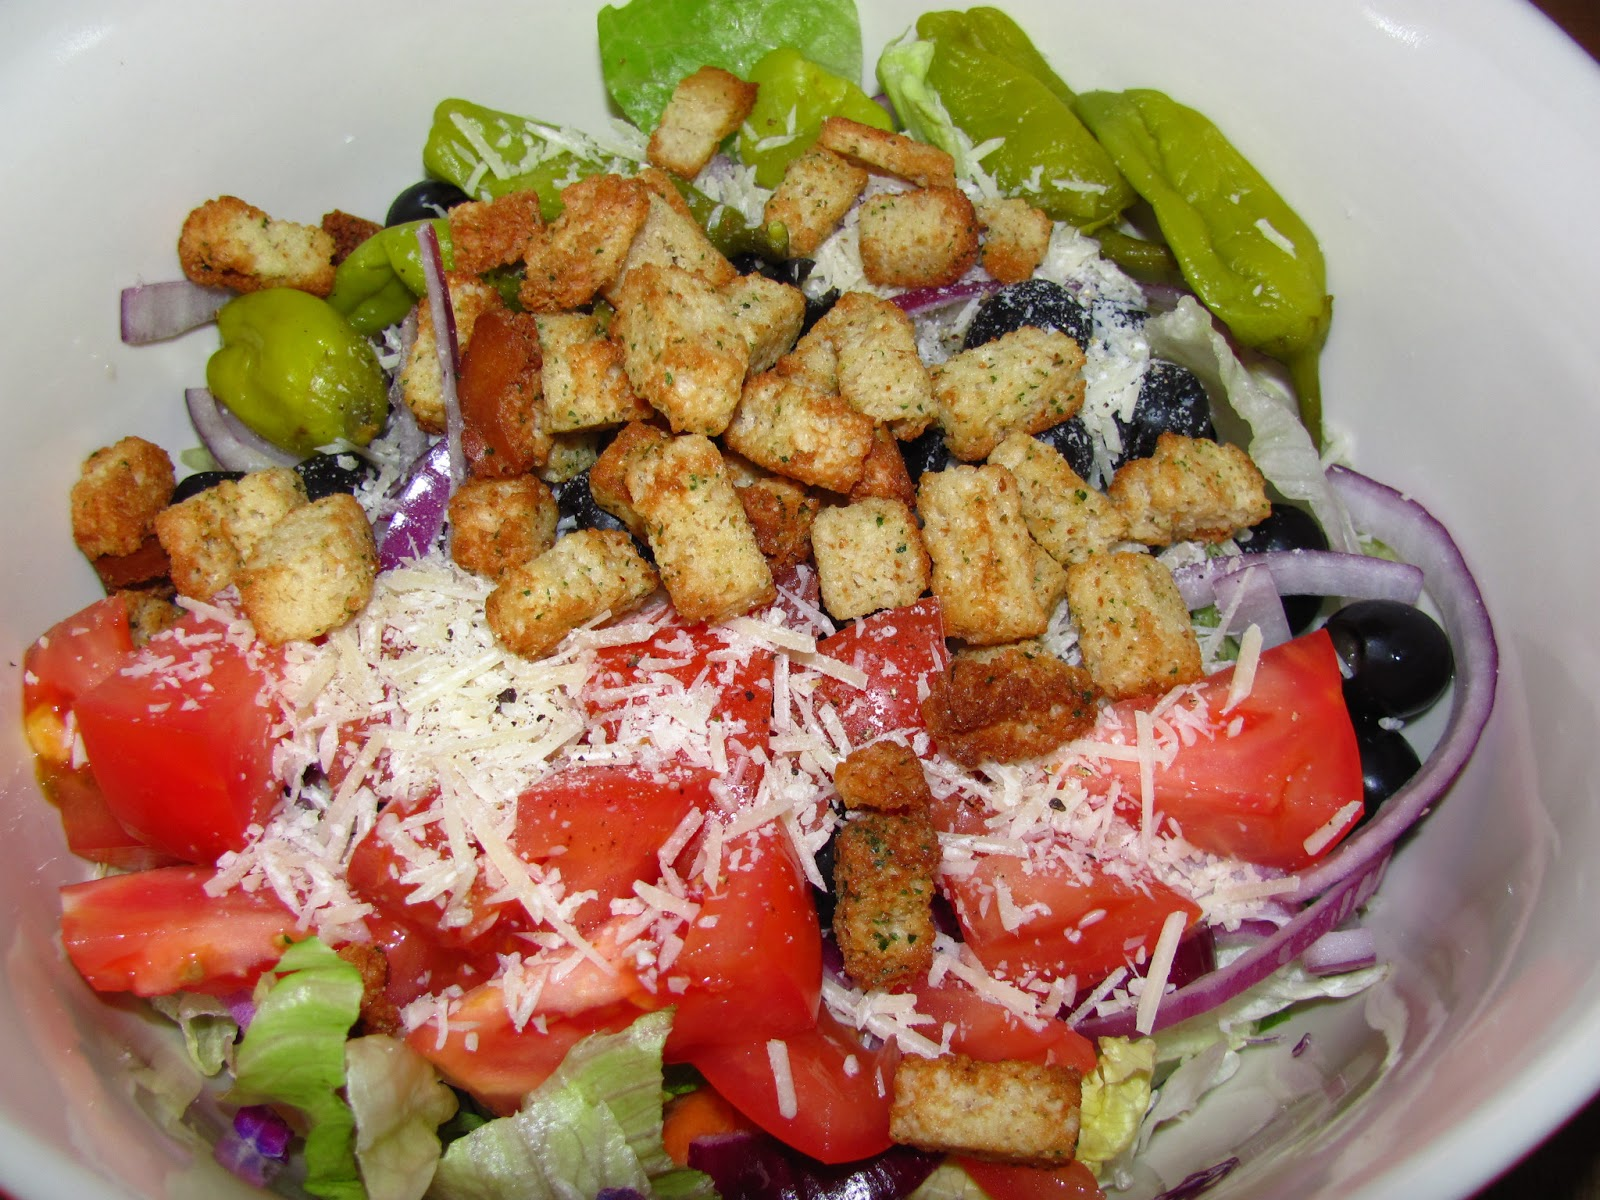 For the love of food olive garden salad dressing and - Where can i buy olive garden salad dressing ...